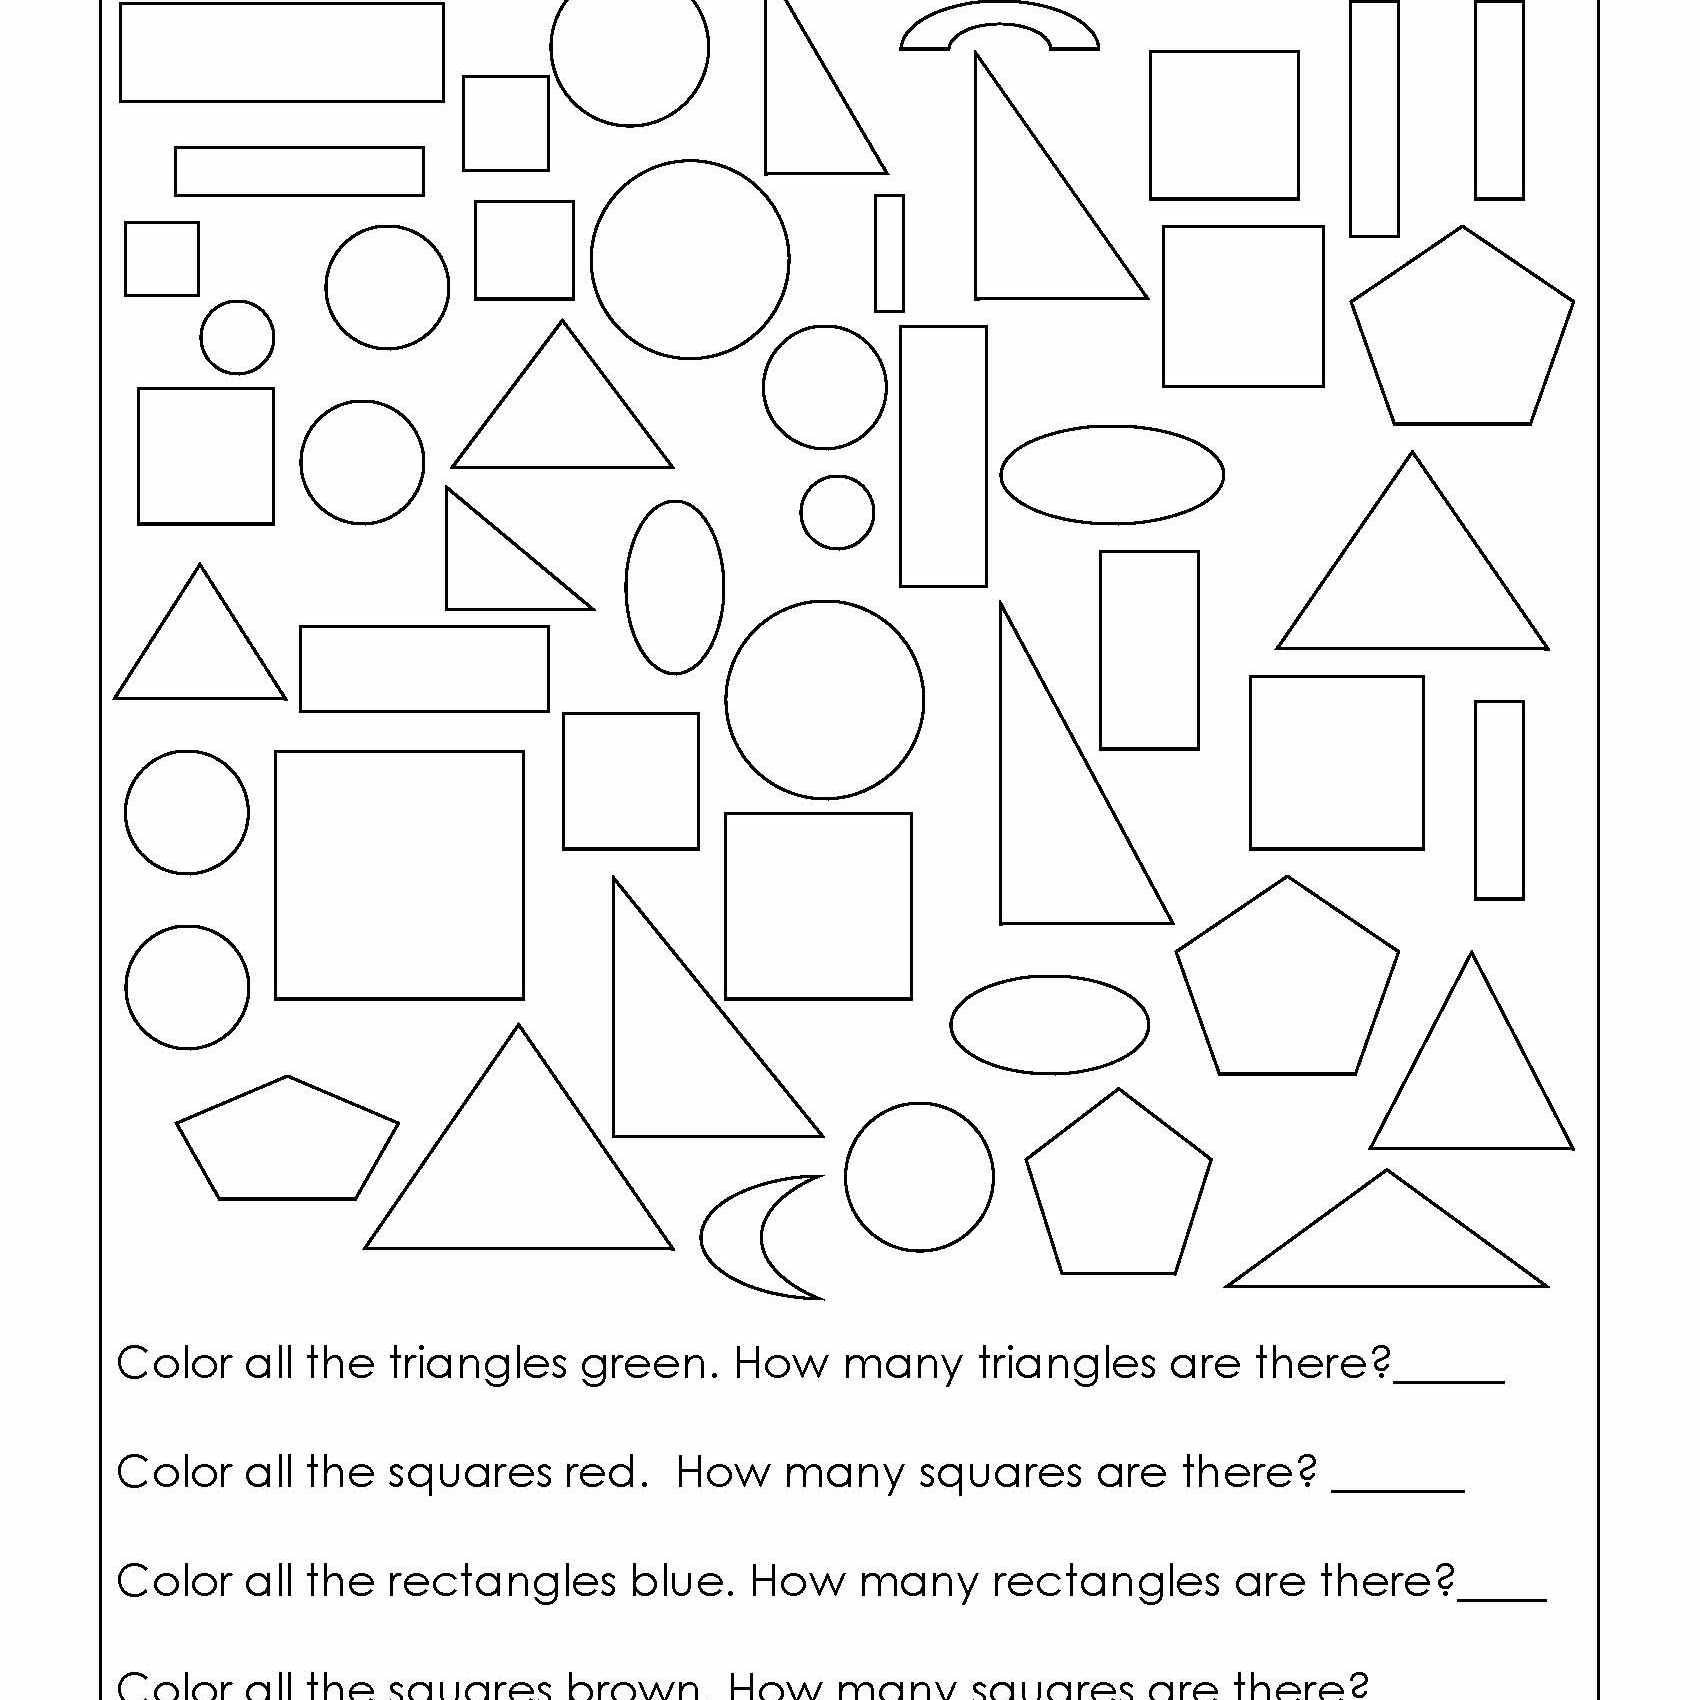 2nd Grade Perimeter Worksheets Worksheets 3rd Grade Shapes Worksheet In Geometry